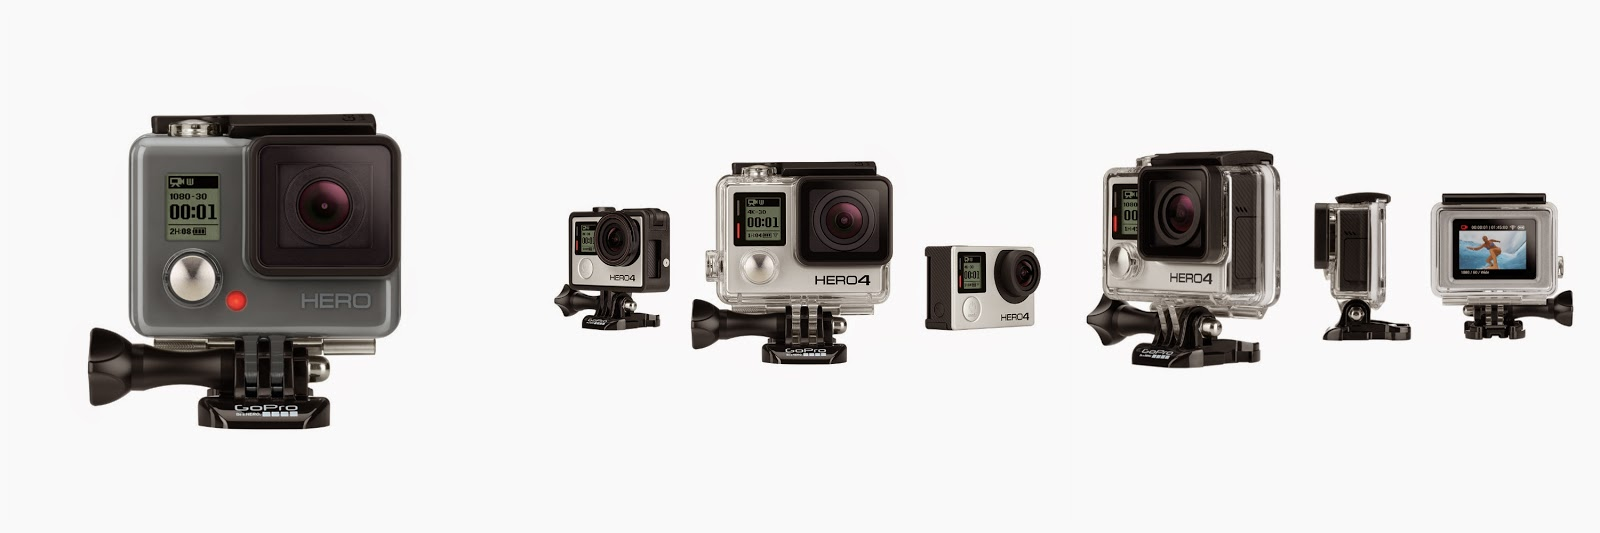 Capture All the Action, Fun, & Memories with GoPro from Best Buy -- The Perfect Gift!